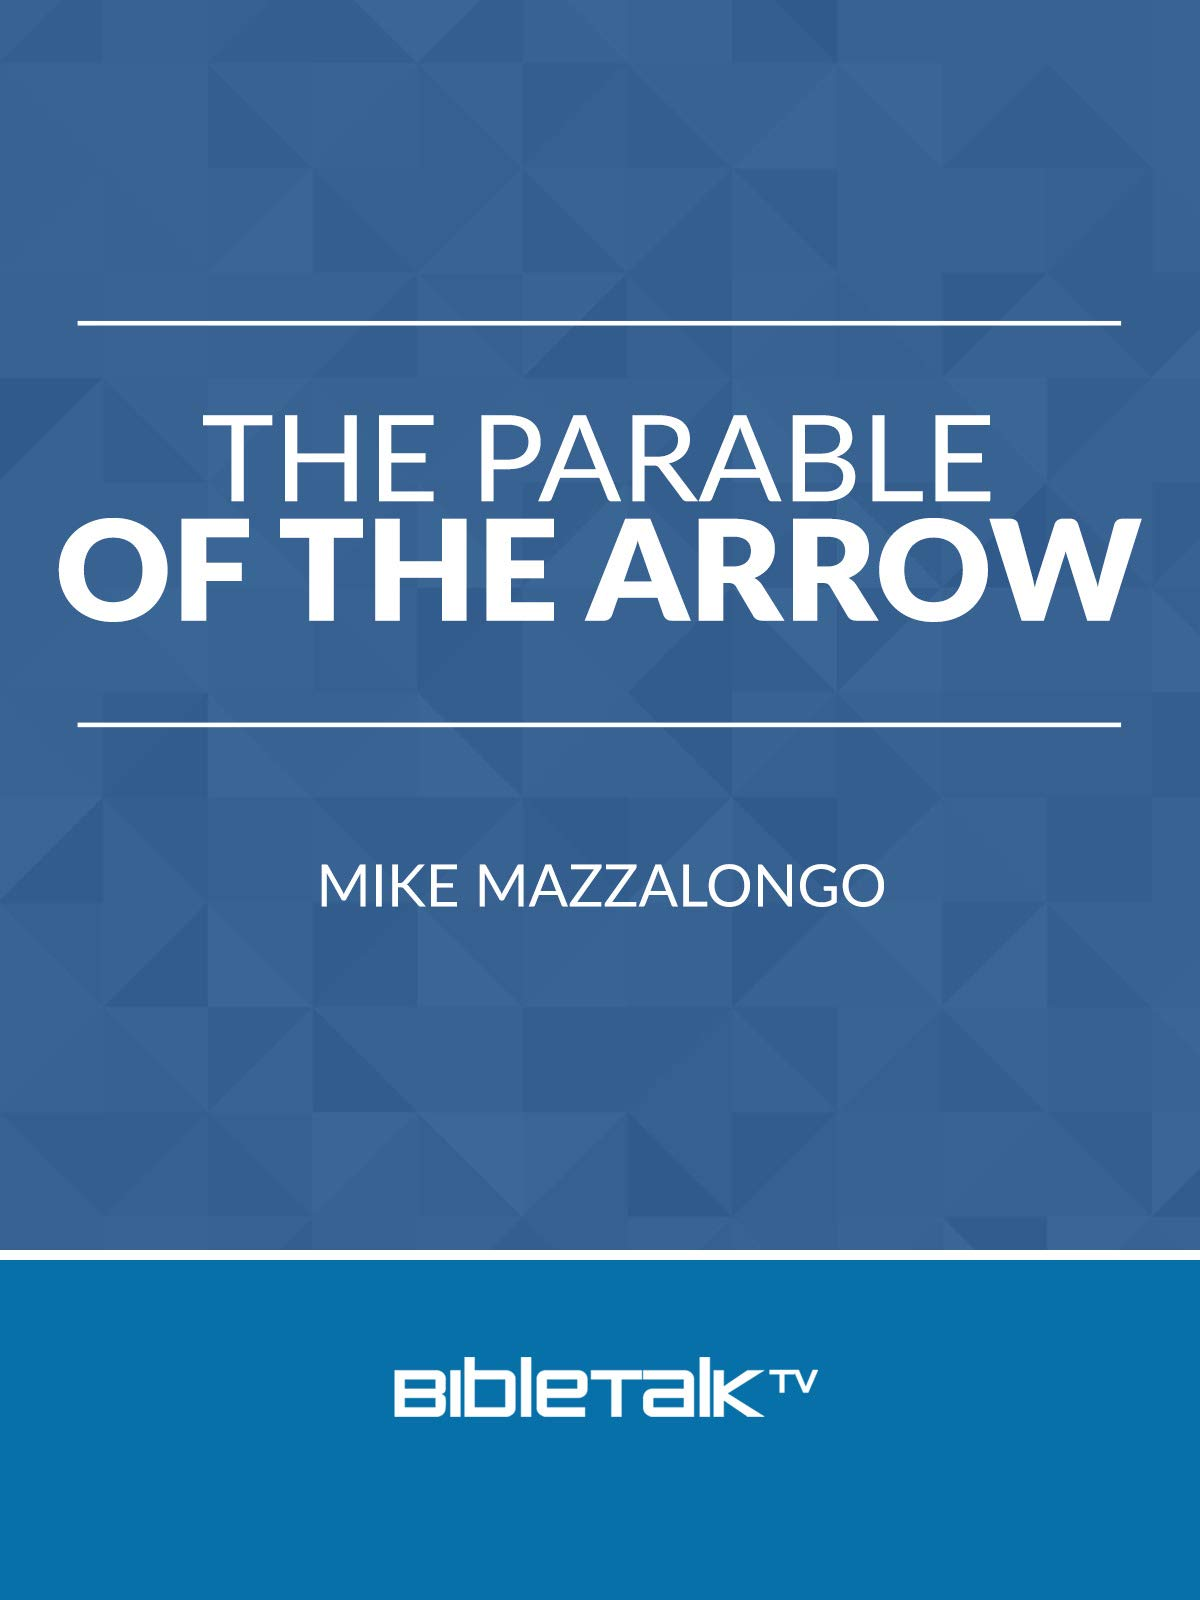 Parable of the Arrow